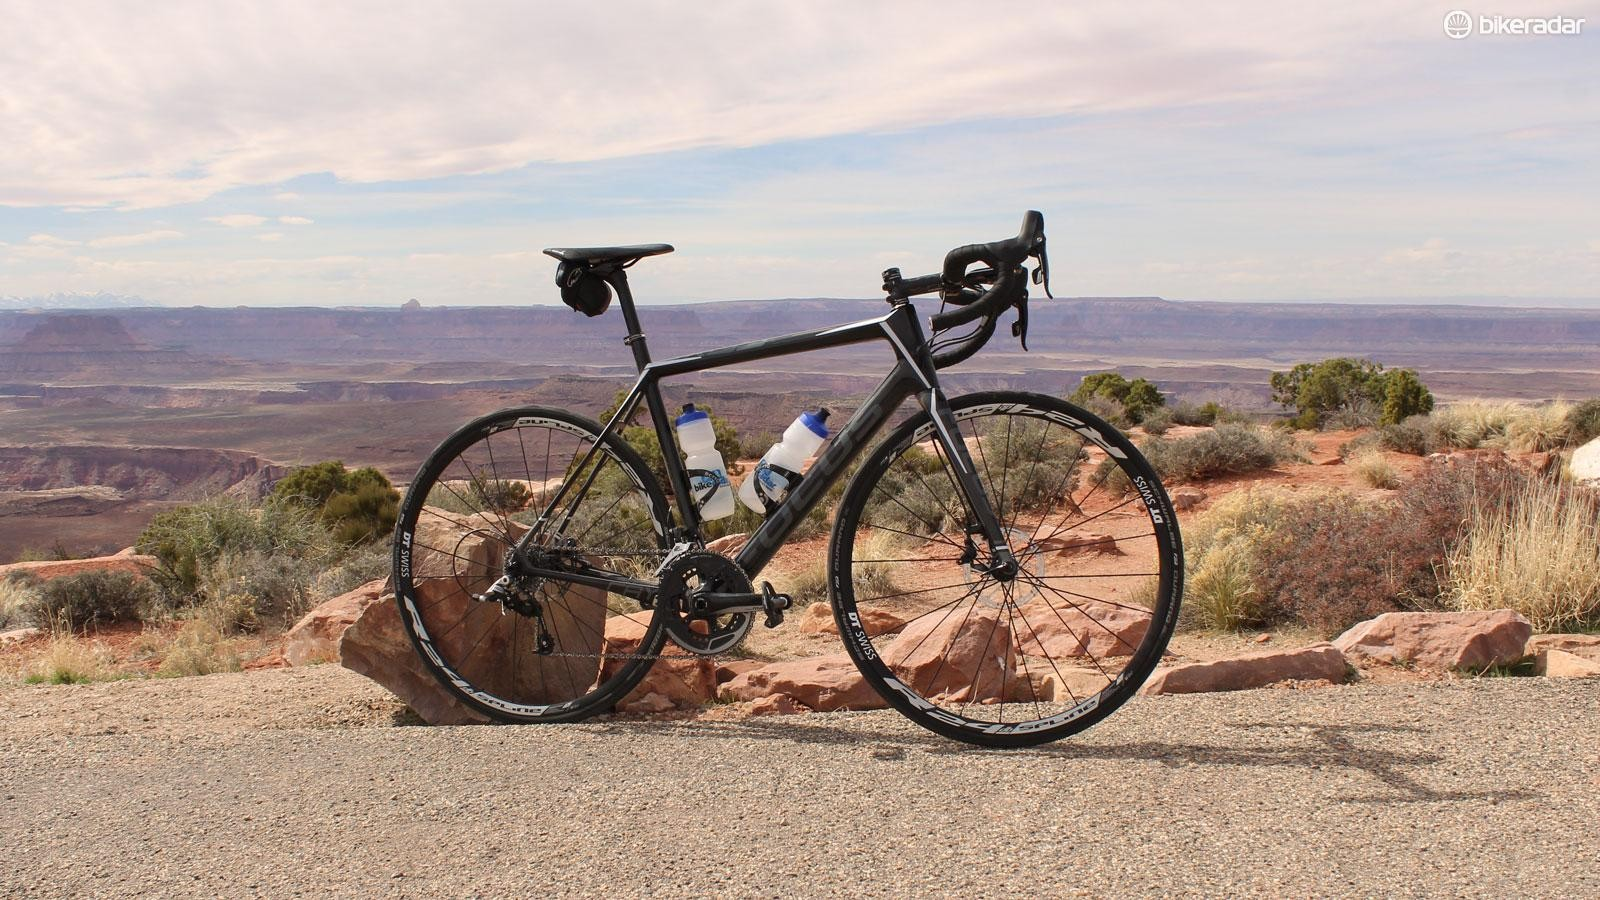 The Focus Cayo 4.0 Disc puts hydraulic discs on a carbon frame with a racy front end for a good price